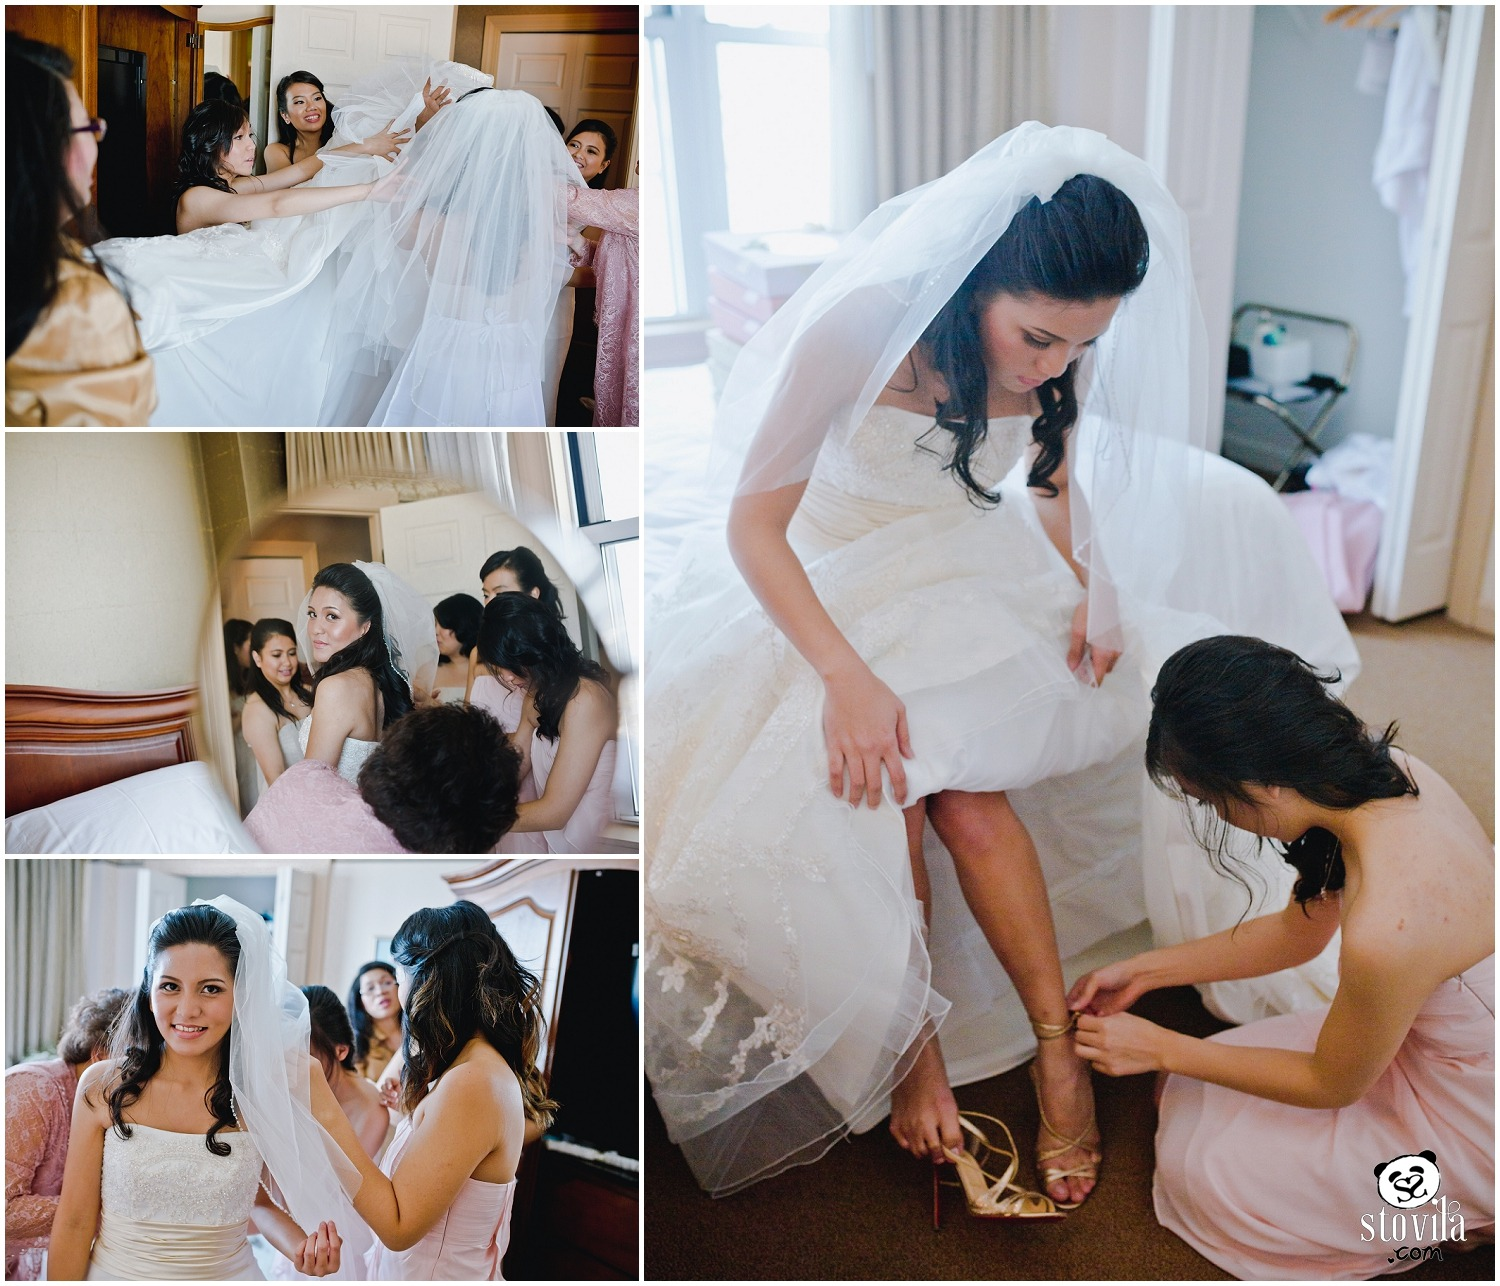 MA_Wedding_Sheraton_Harborside_Portsmouth_NH_STOVILA (7)